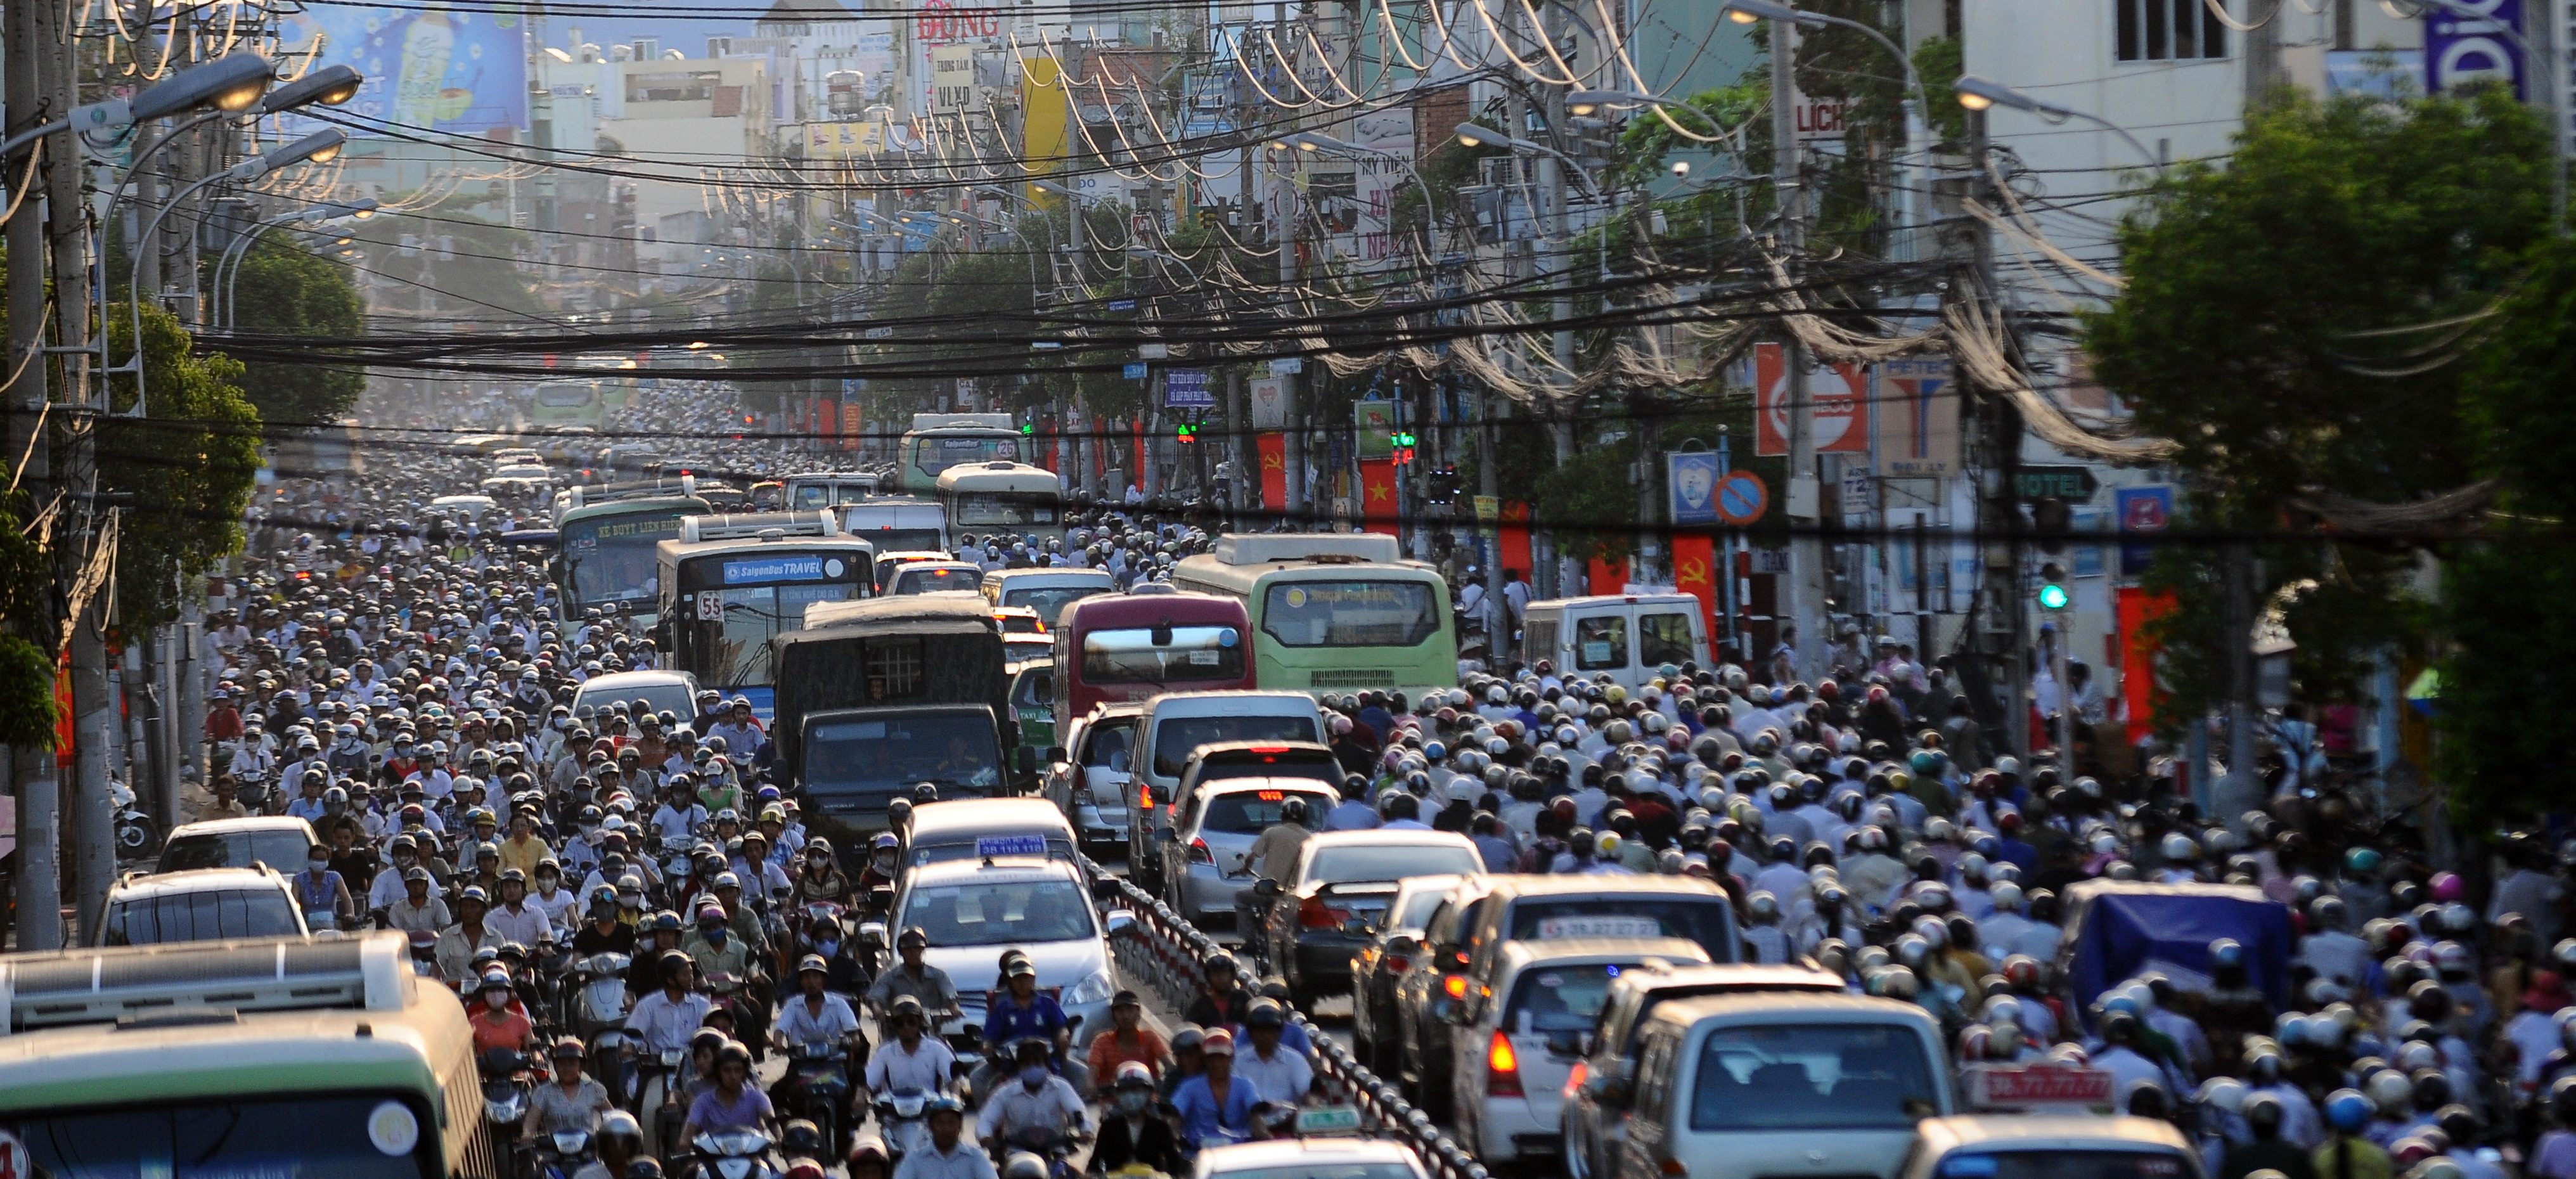 Vietnam ranked the fifteenth most populous nation in the world, with 96 million inhabitants